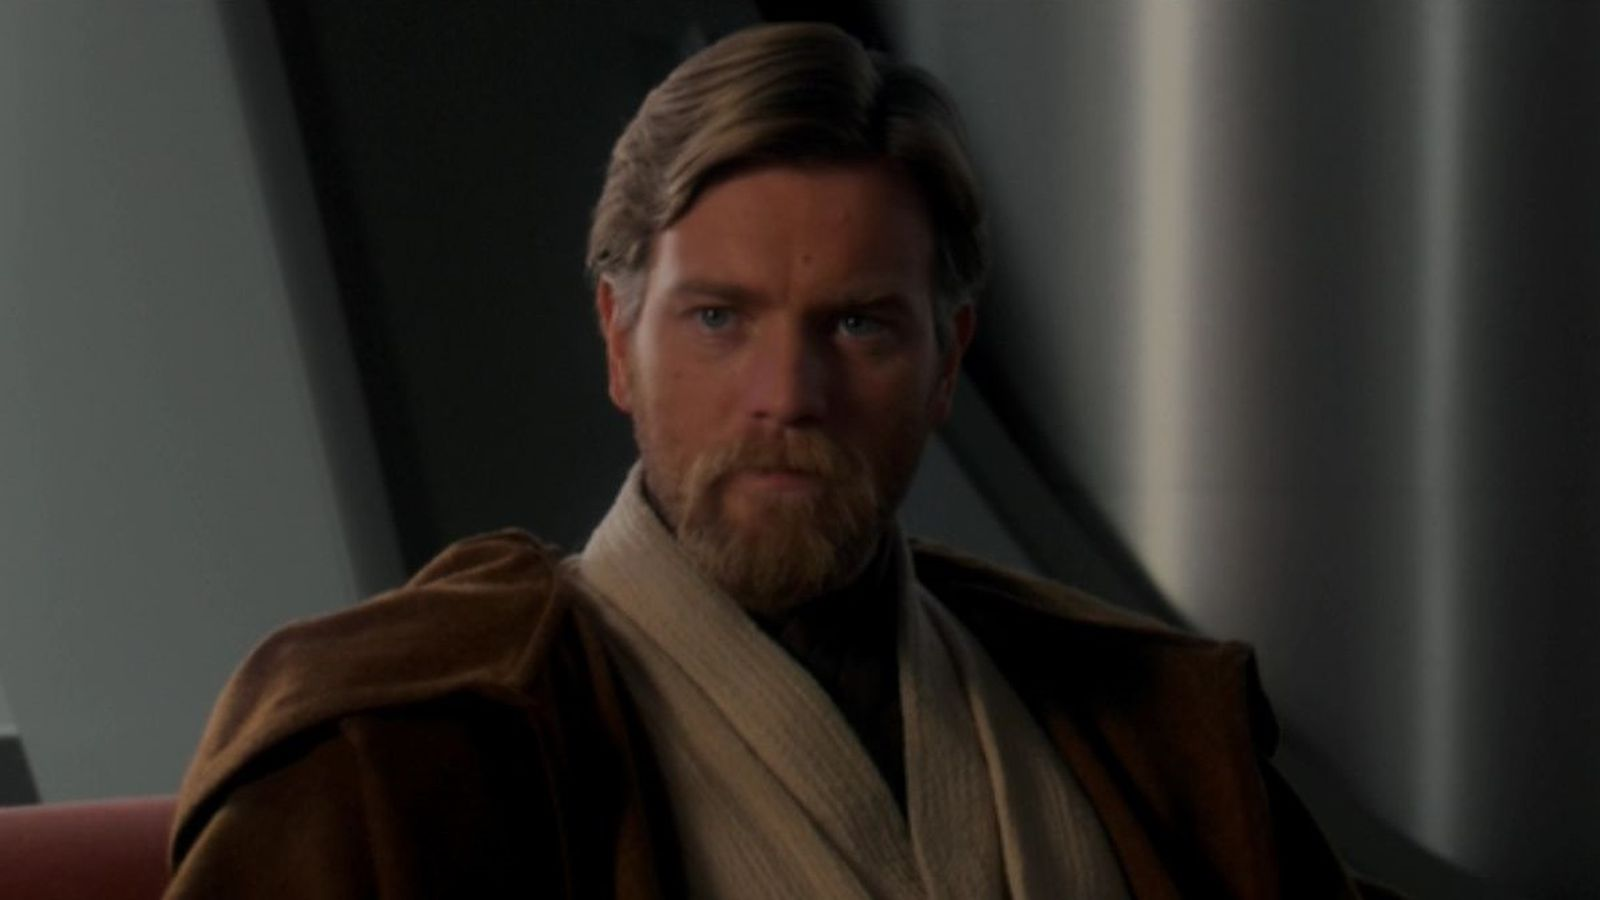 What would an Obi-Wan Kenobi film mean for the future of the Star Wars franchise?